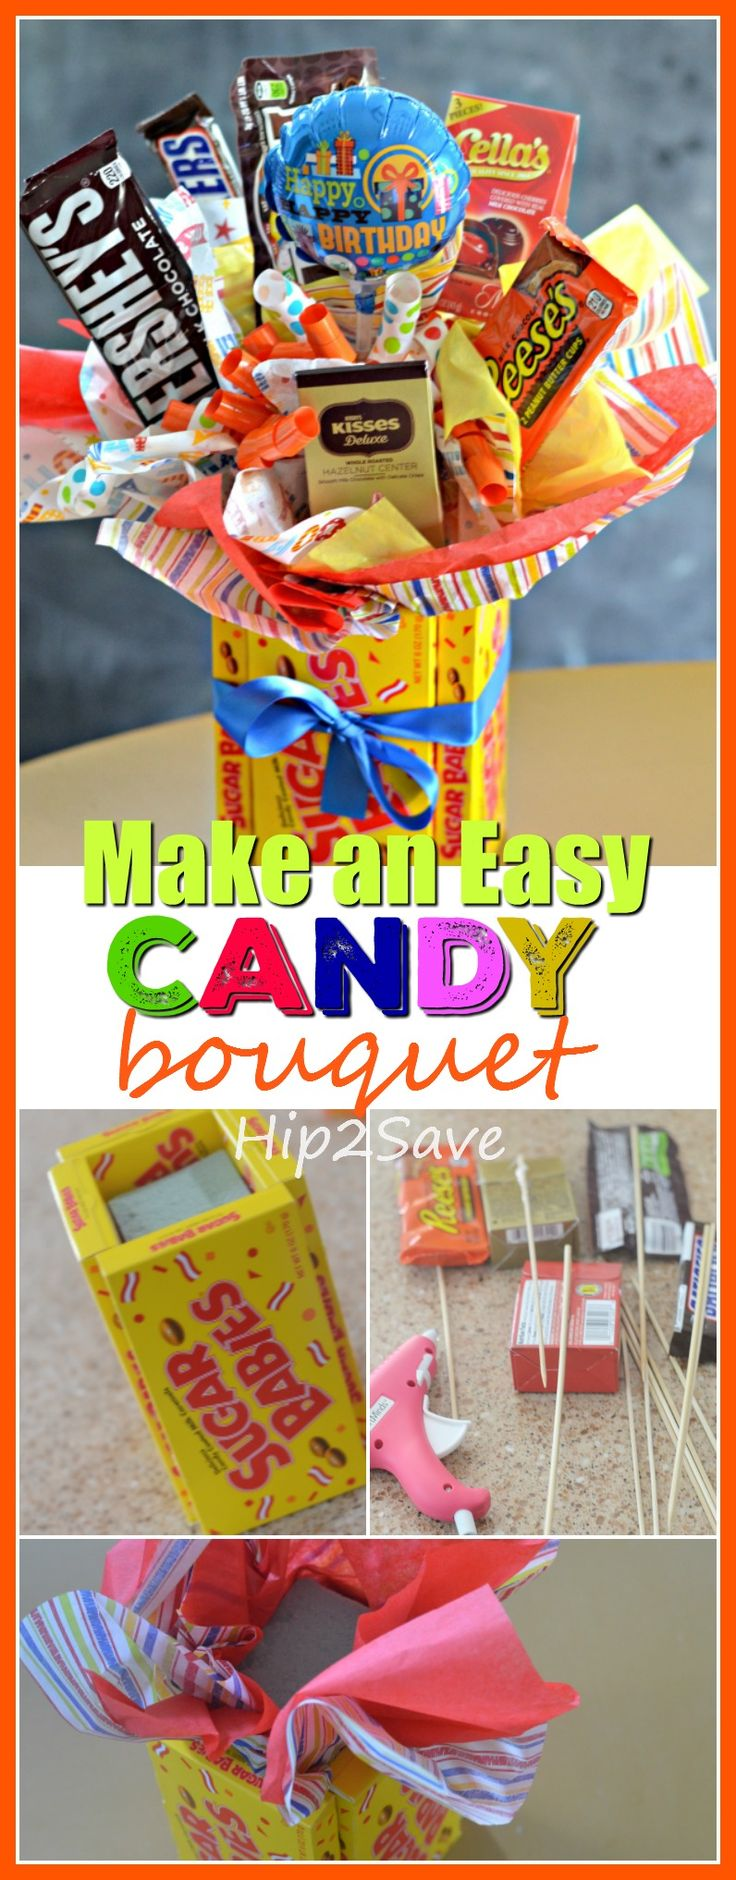 DIY Candy Bouquet (Fun & Easy Gift Idea) – Hip2Save